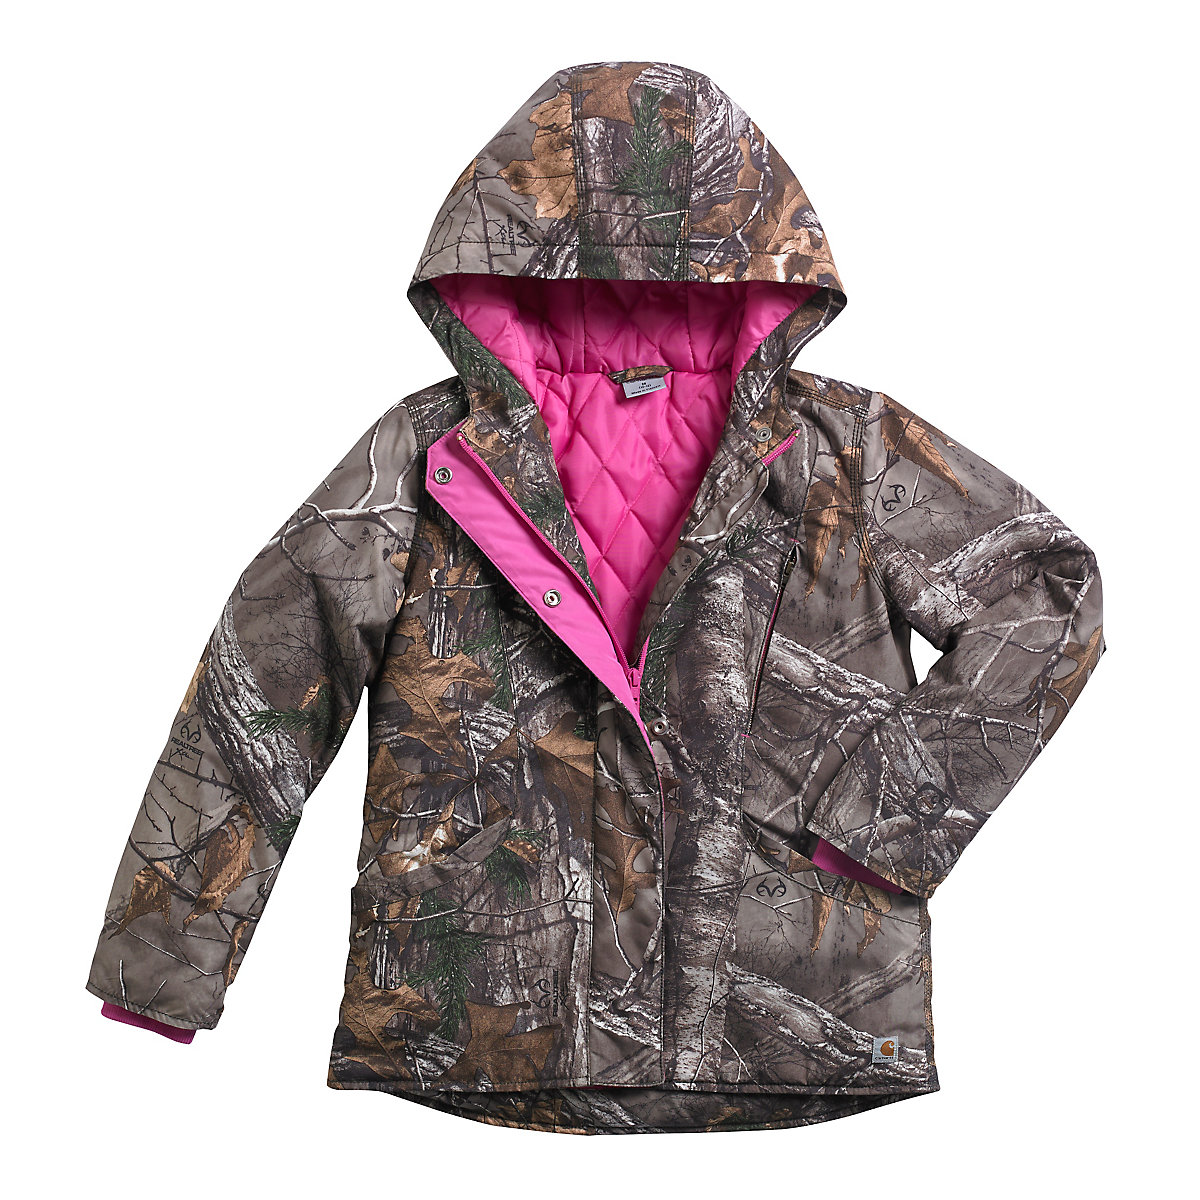 Shop for girls camo clothing online at Target. Free shipping on purchases over $35 and save 5% every day with your Target REDcard.